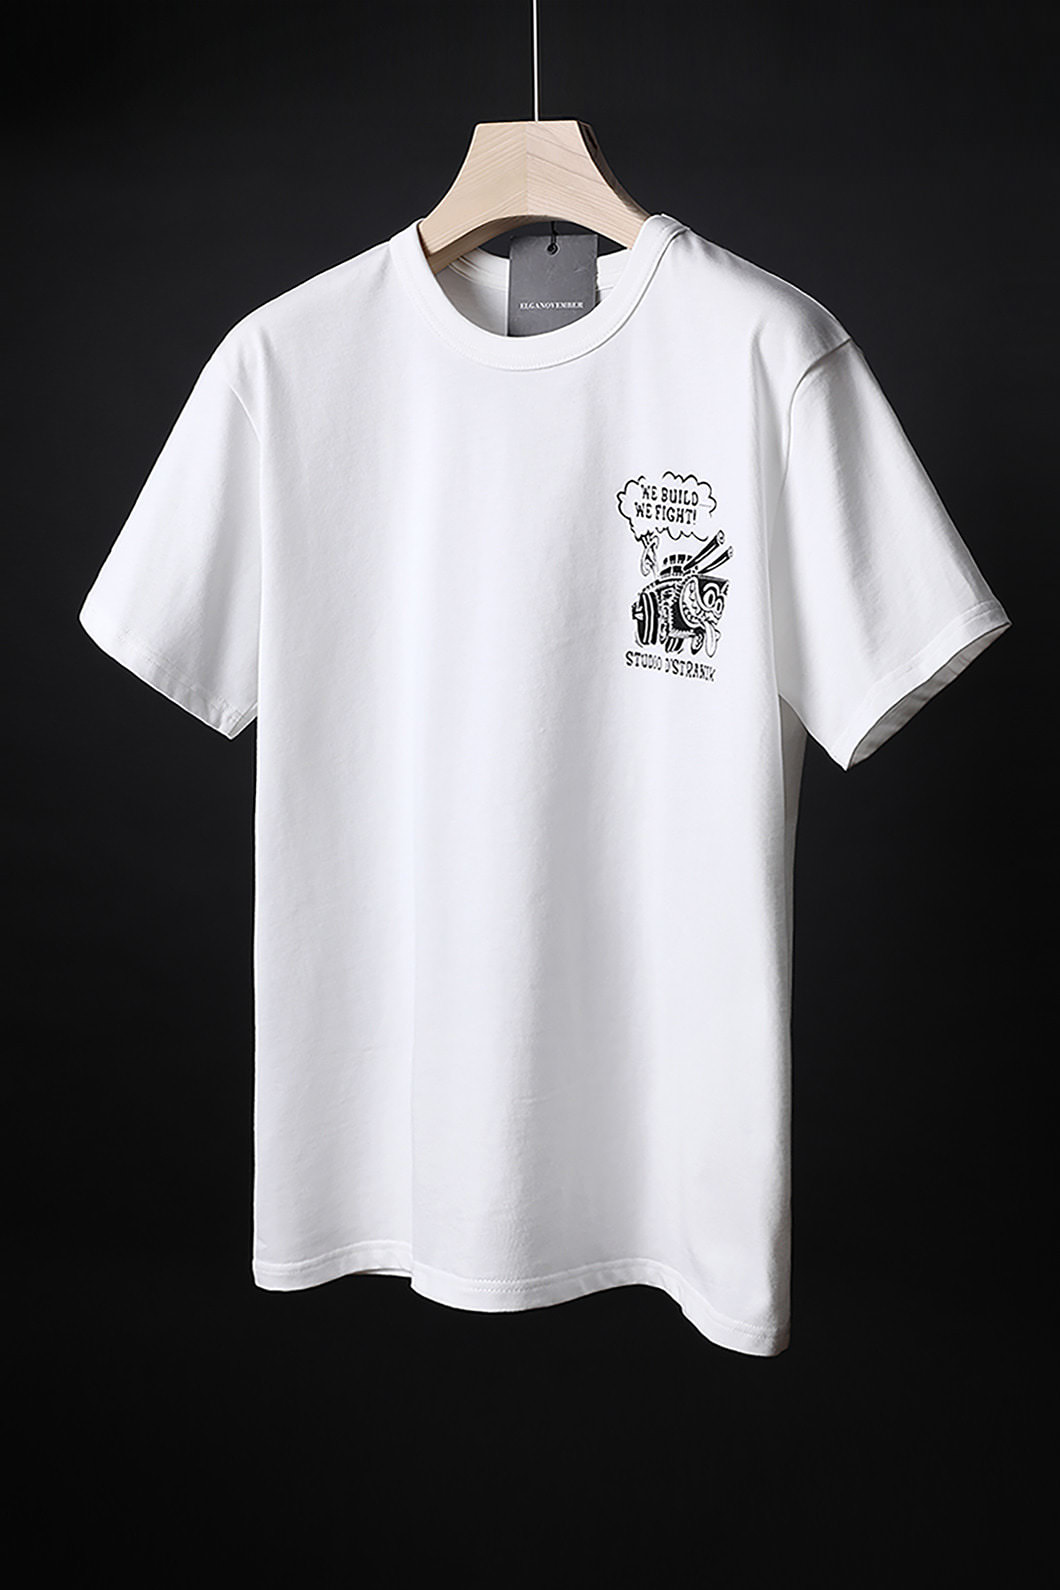 MCKEE CAPTAIN ROUND T-SHIRT-WHITE수입한정제품